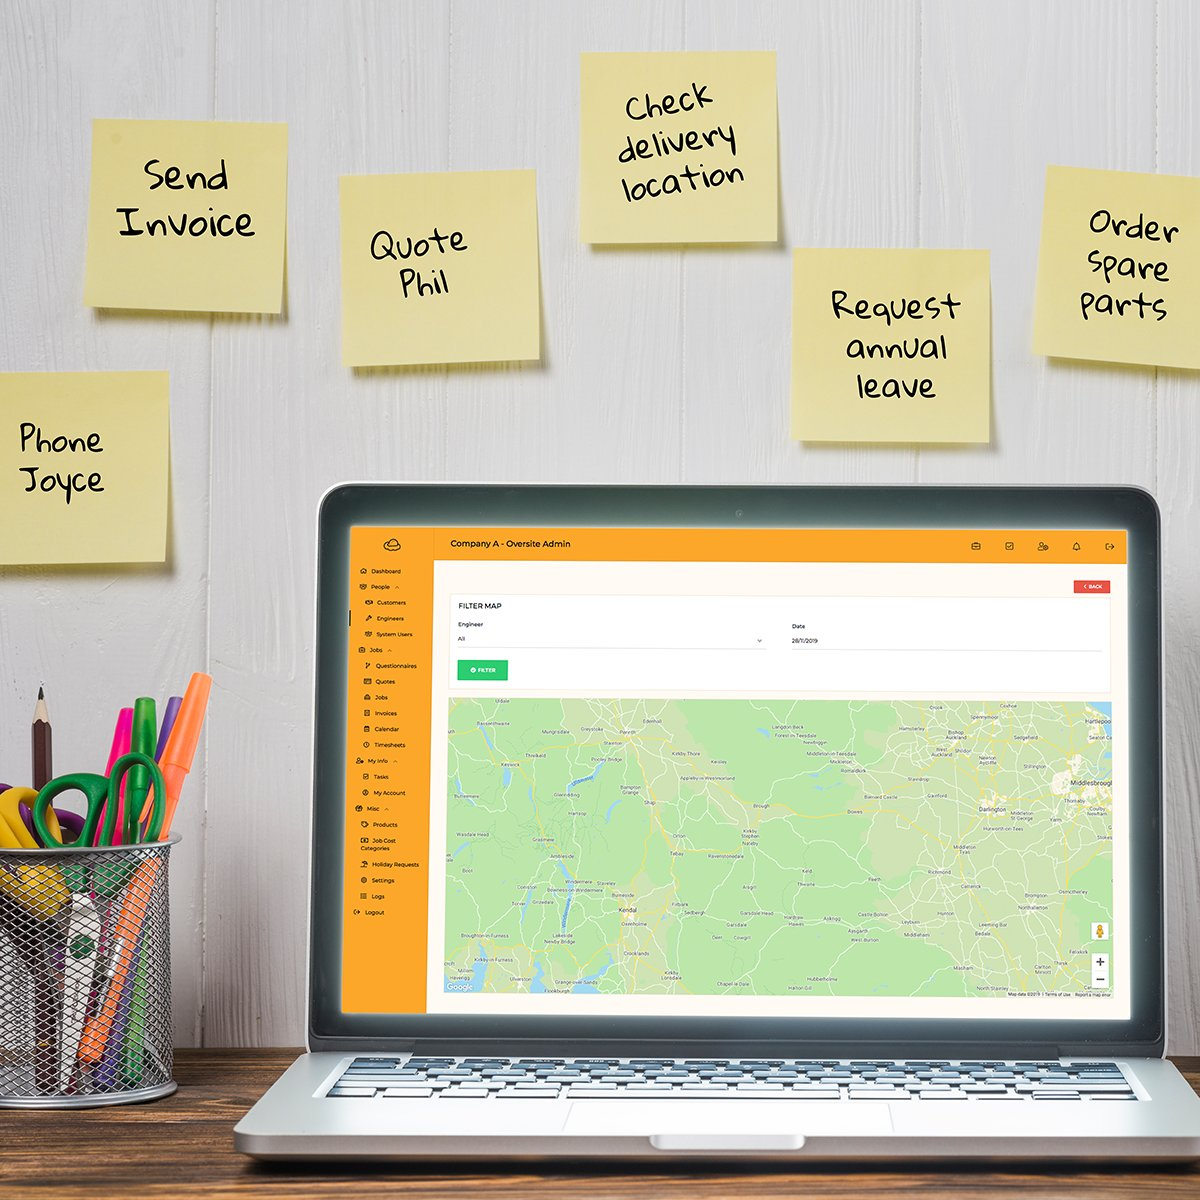 Ditch the post-it notes & save our planet with Oversite 🌍  Manage tasks, set reminders and keep on top of vital quotes and invoices; all from one cloud-based CRM system ☁️  #CRM #erp #CloudComputing #businesstips https://t.co/wrBrhuLExS